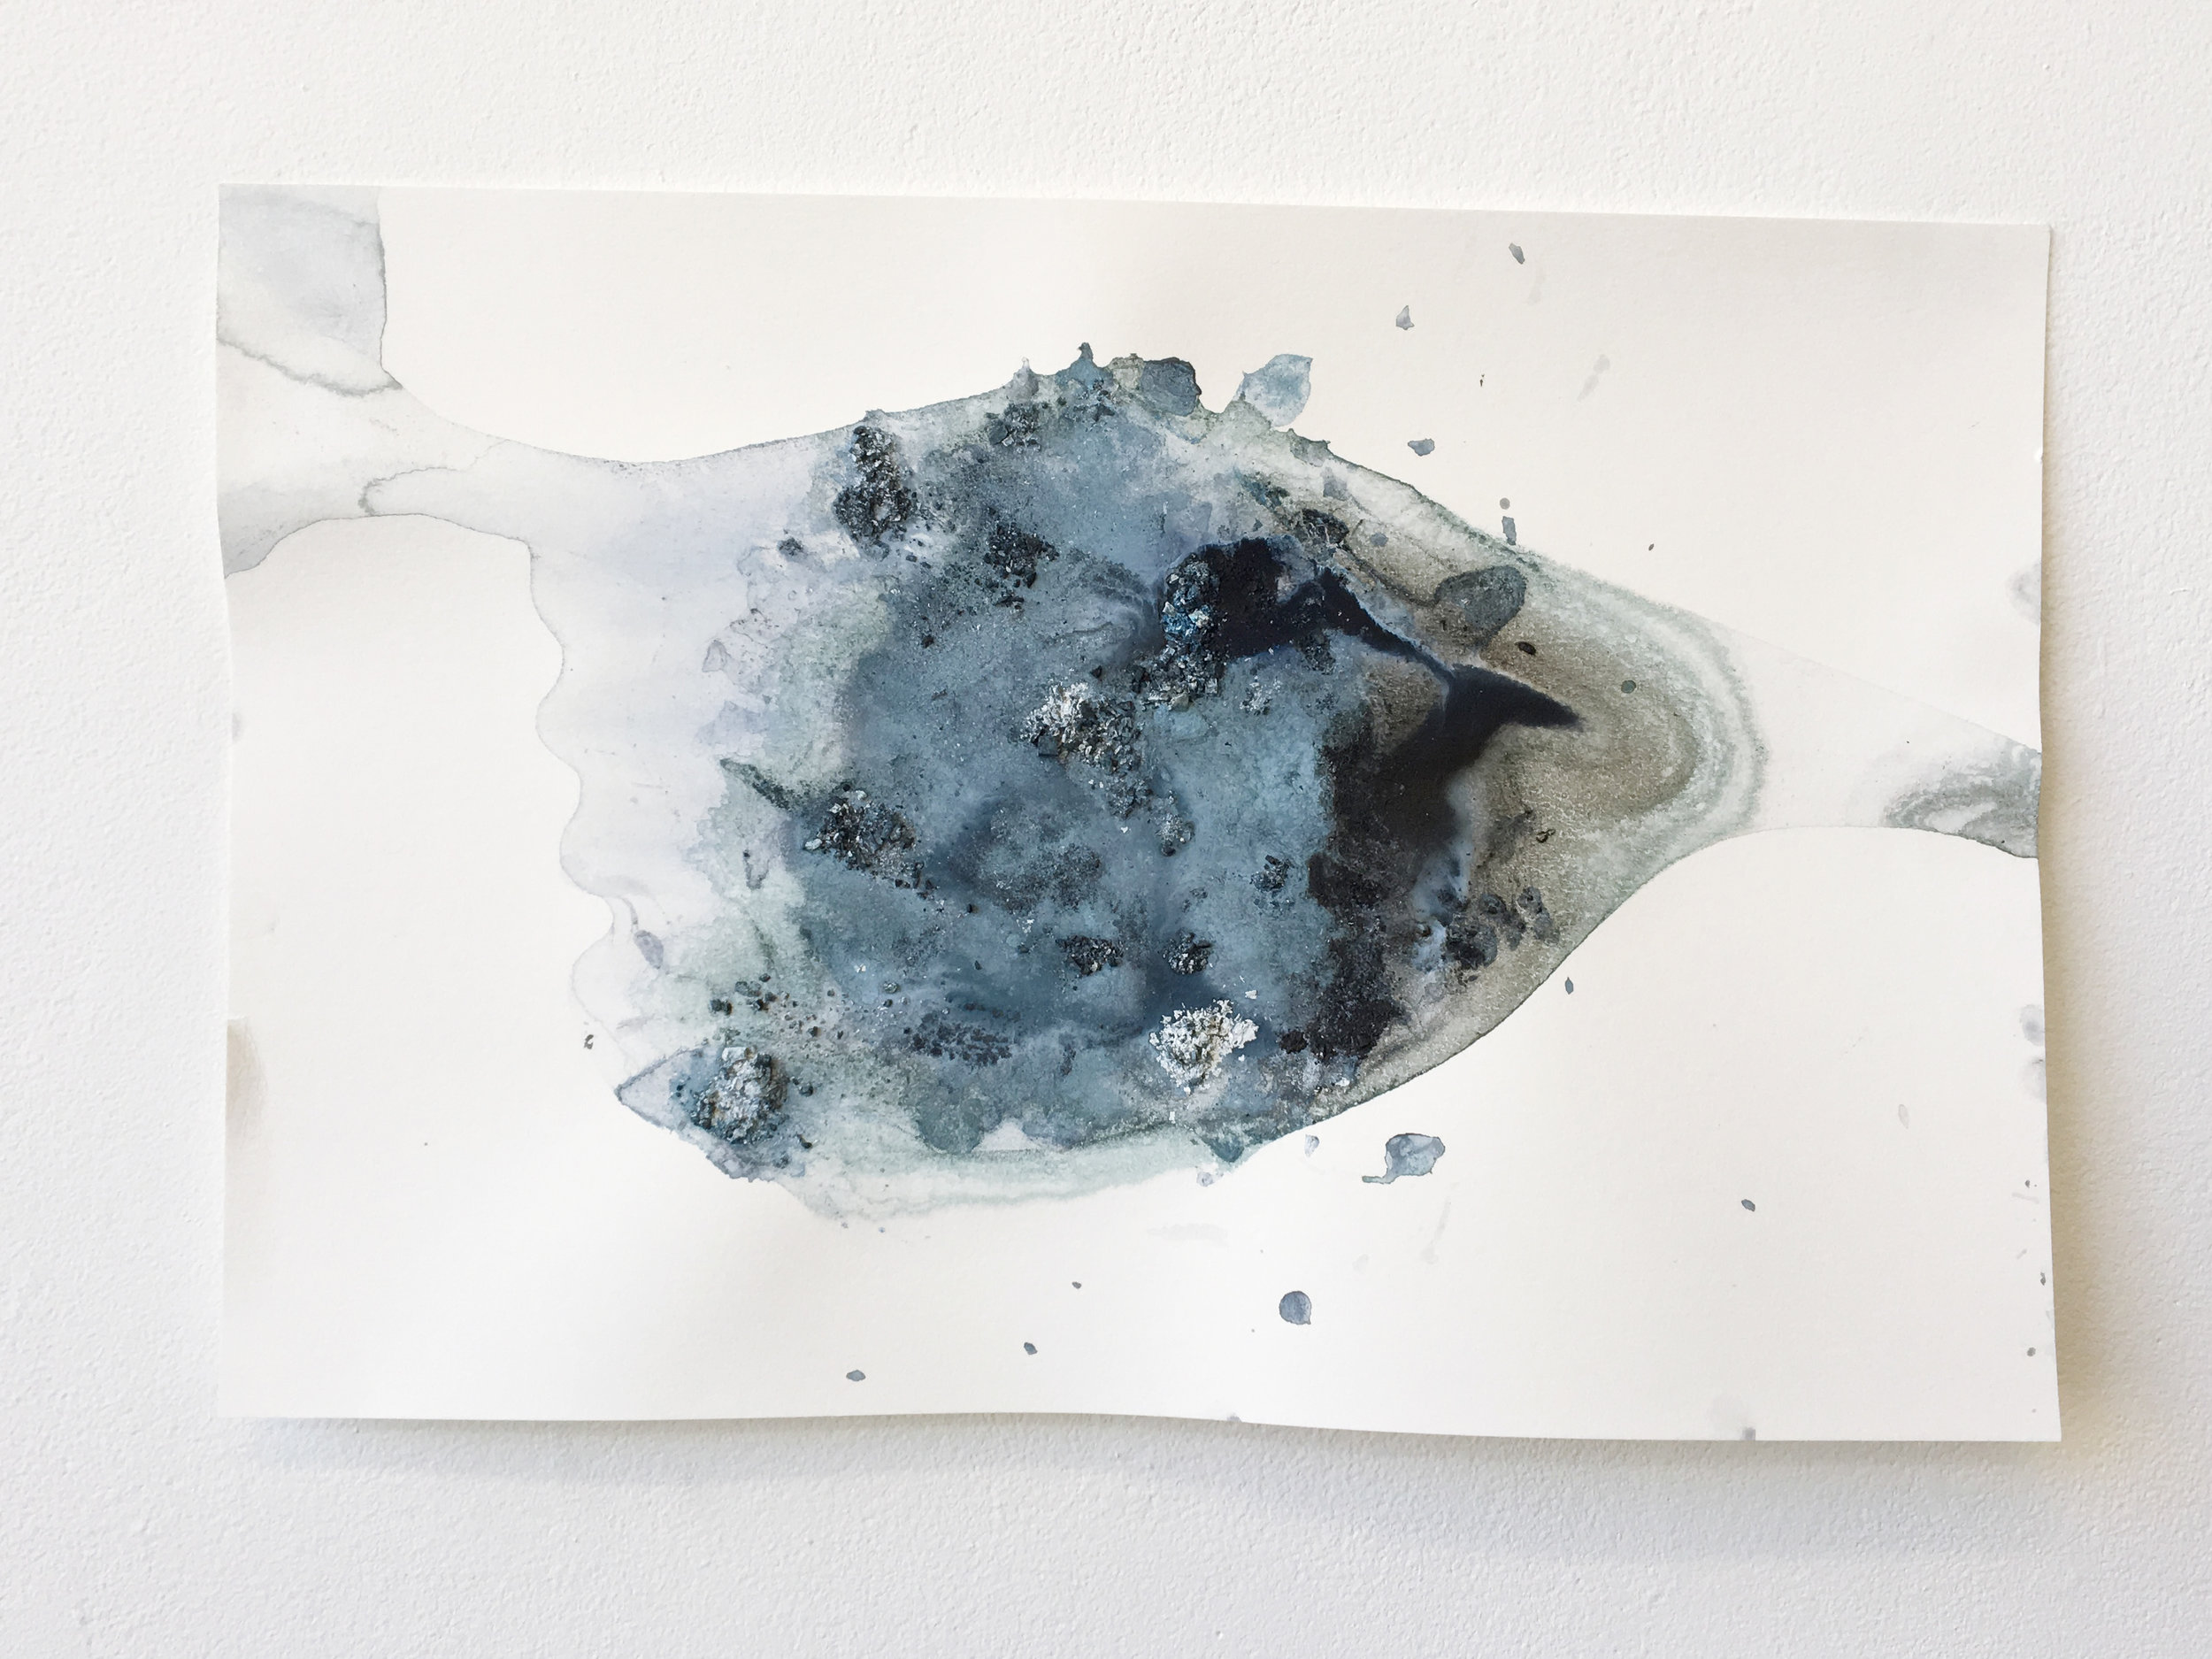 Flow #4     | 2016 | 12x18in | ice (pigment, acrylic paint) melted on paper |  $200